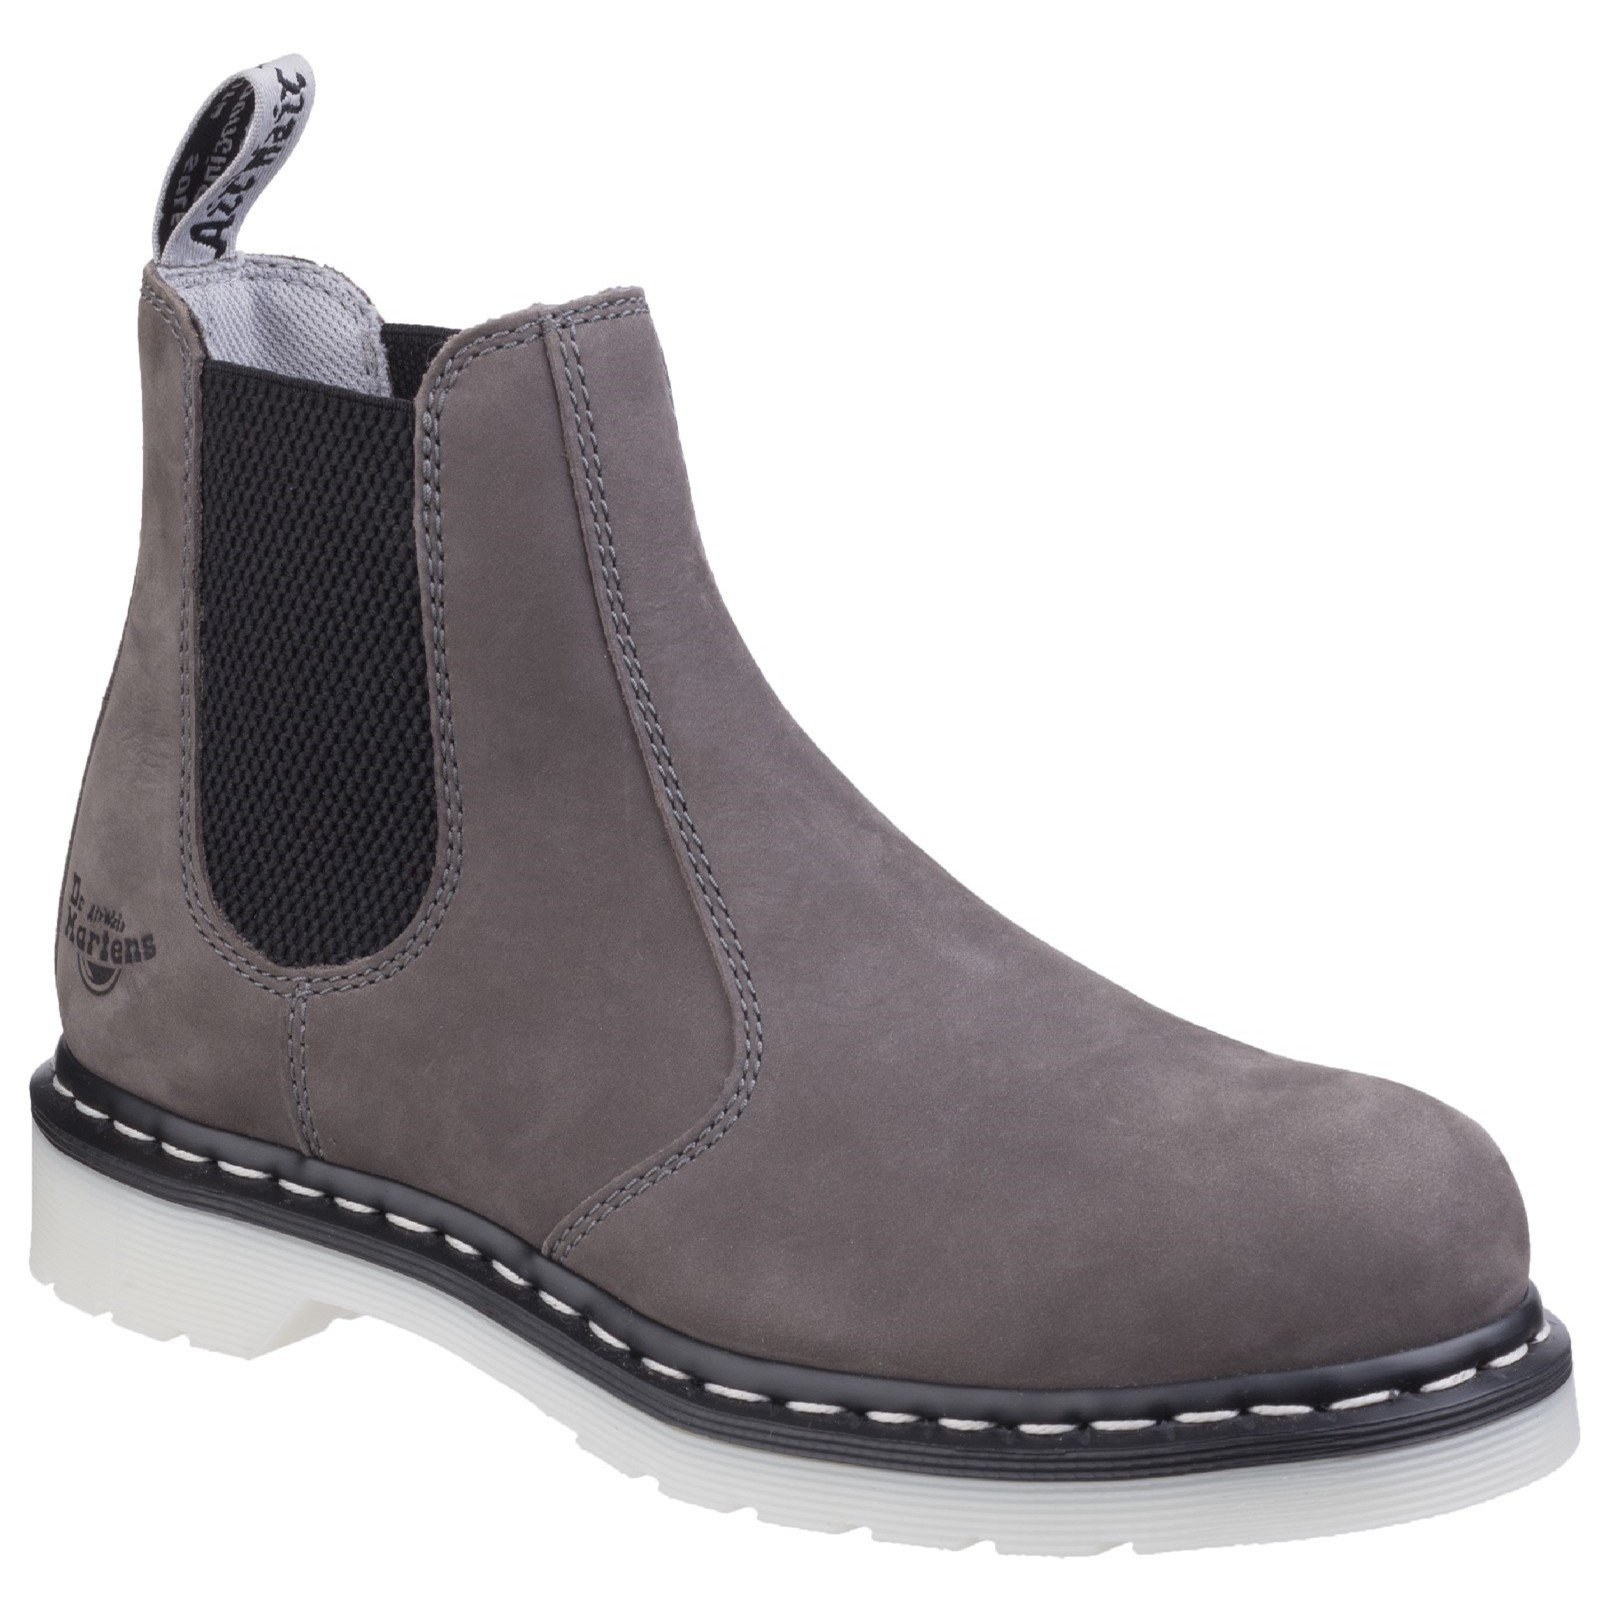 Dr Martens Women's Arbor Elastic Safety Boot Various Colours 29517 - Grey Wind River 5